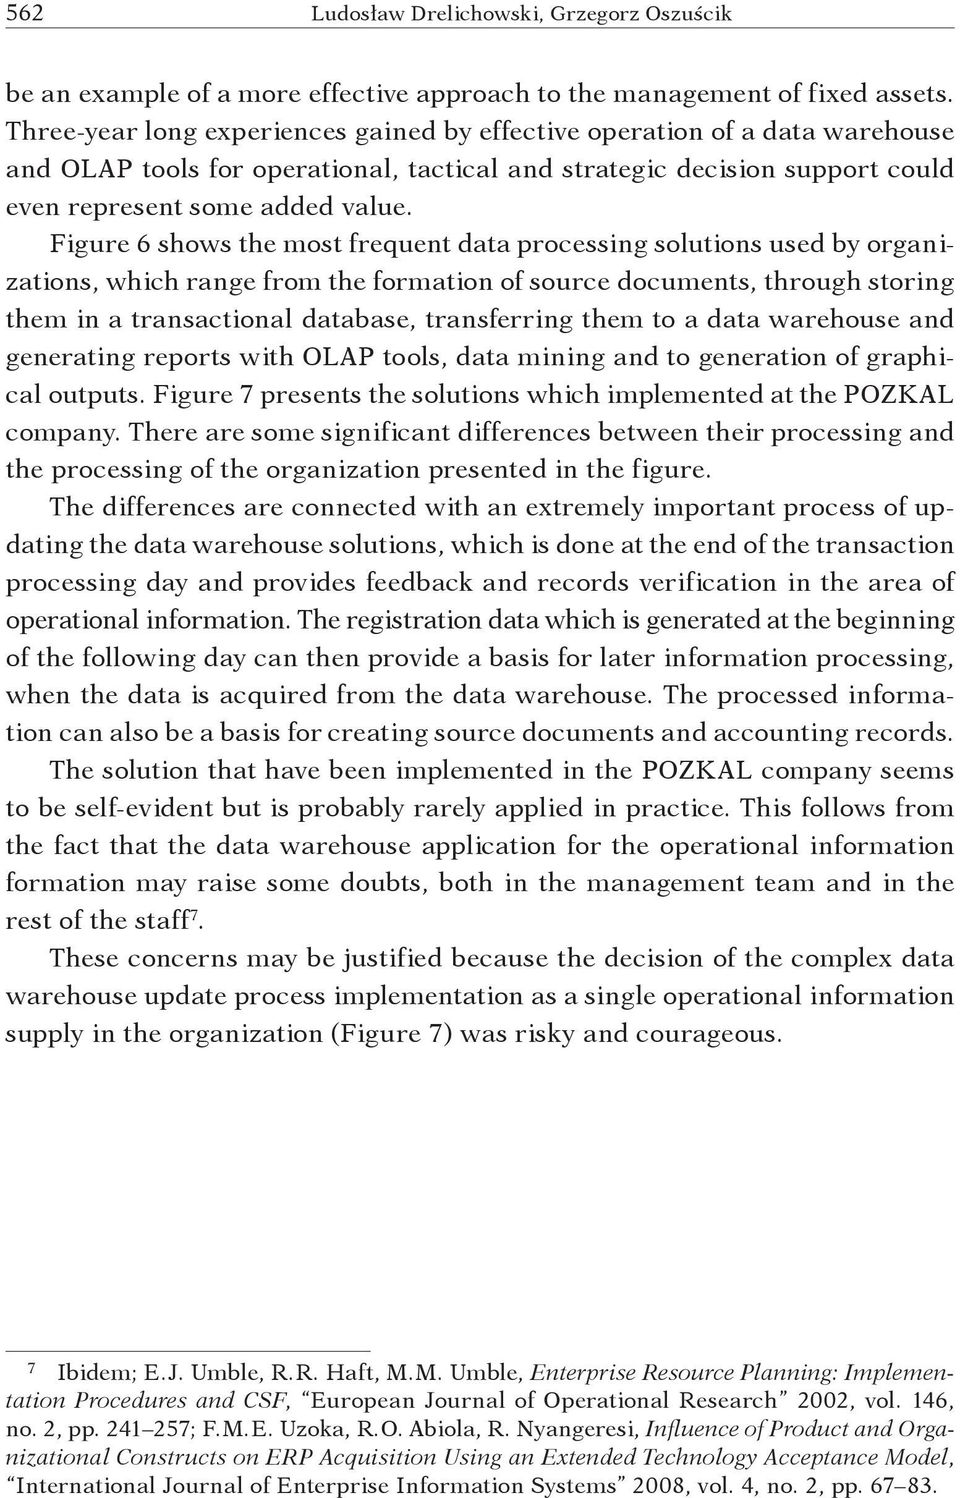 Figure 6 shows the most frequent data processing solutions used by organizations, which range from the formation of source documents, through storing them in a transactional database, transferring